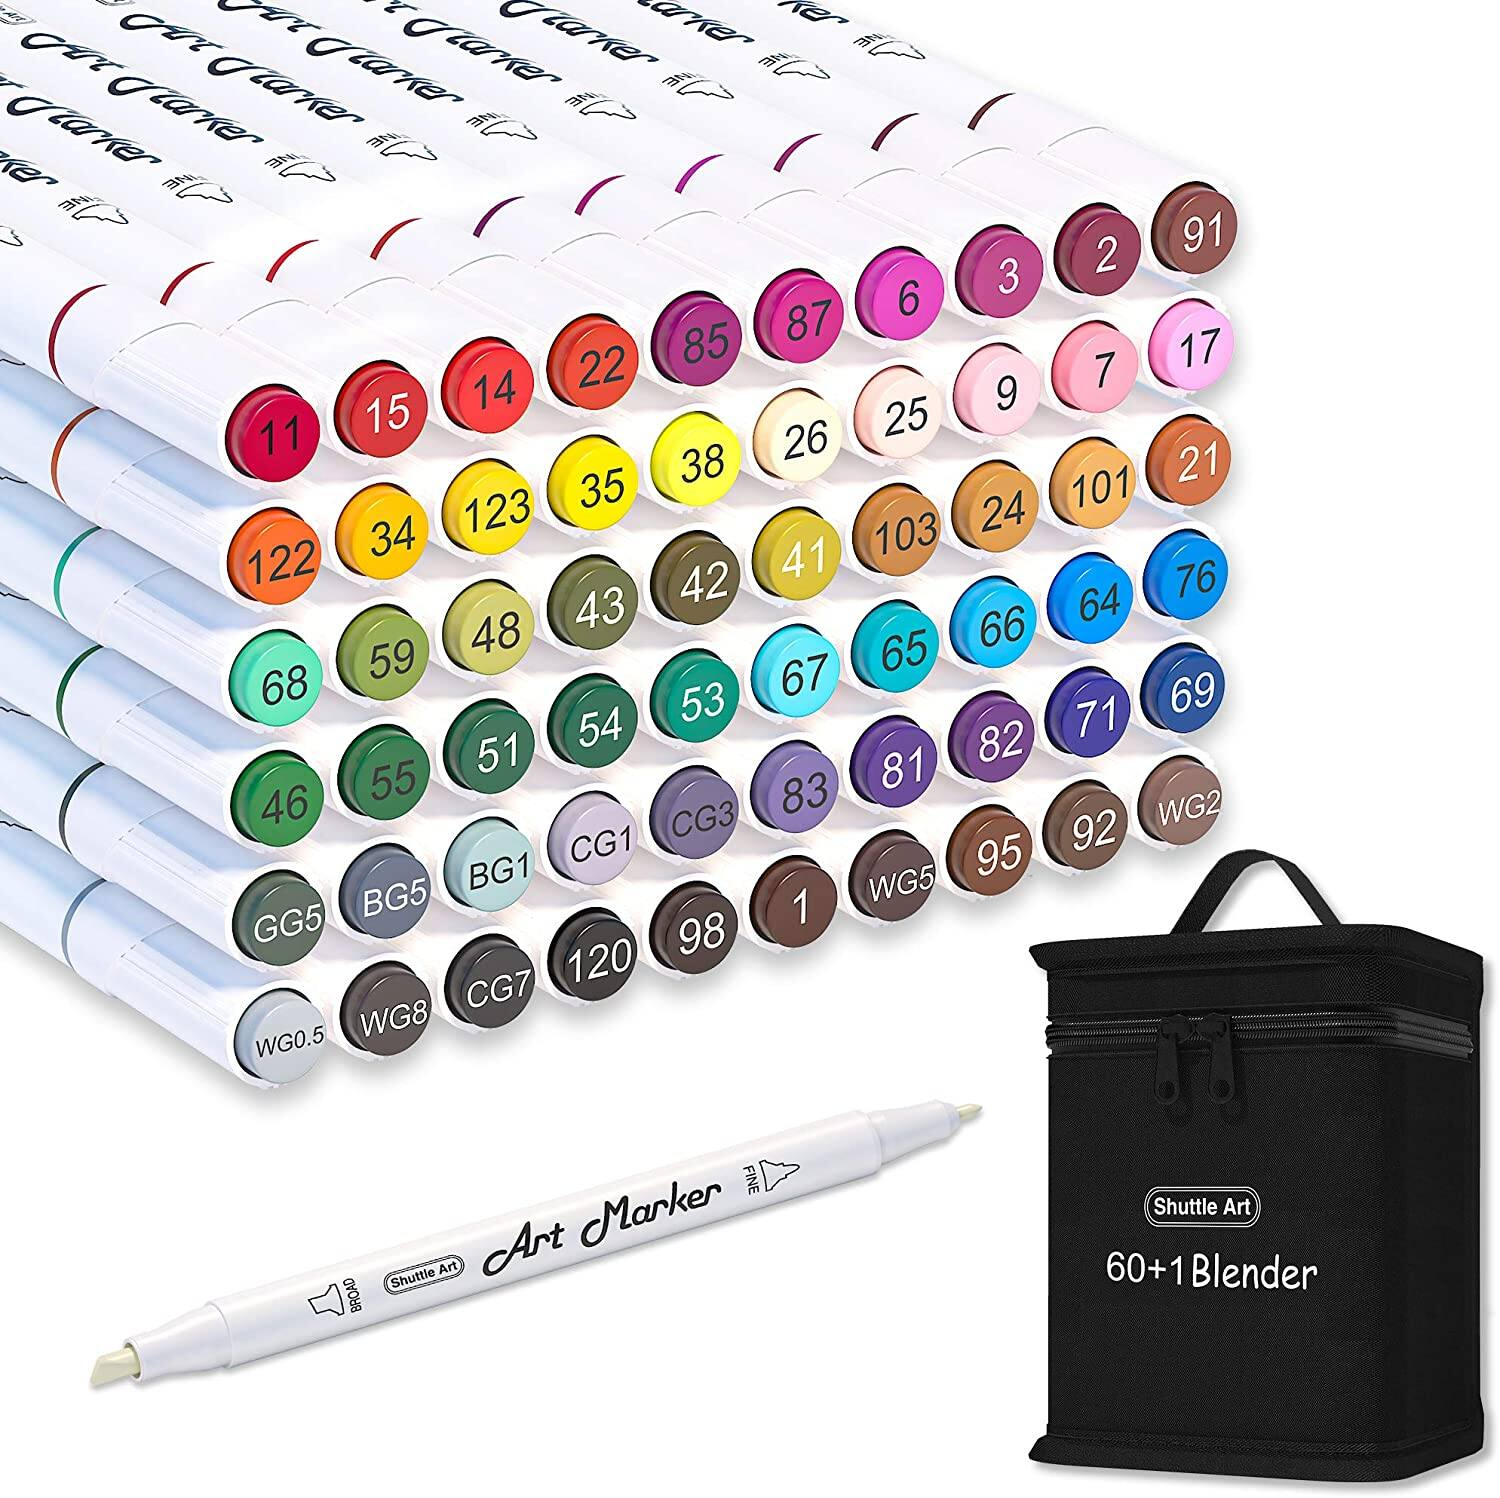 Shuttle Art 61 Colors Dual Tip Art Markers  $11.99 + Free shipping w/ Prime or $25+